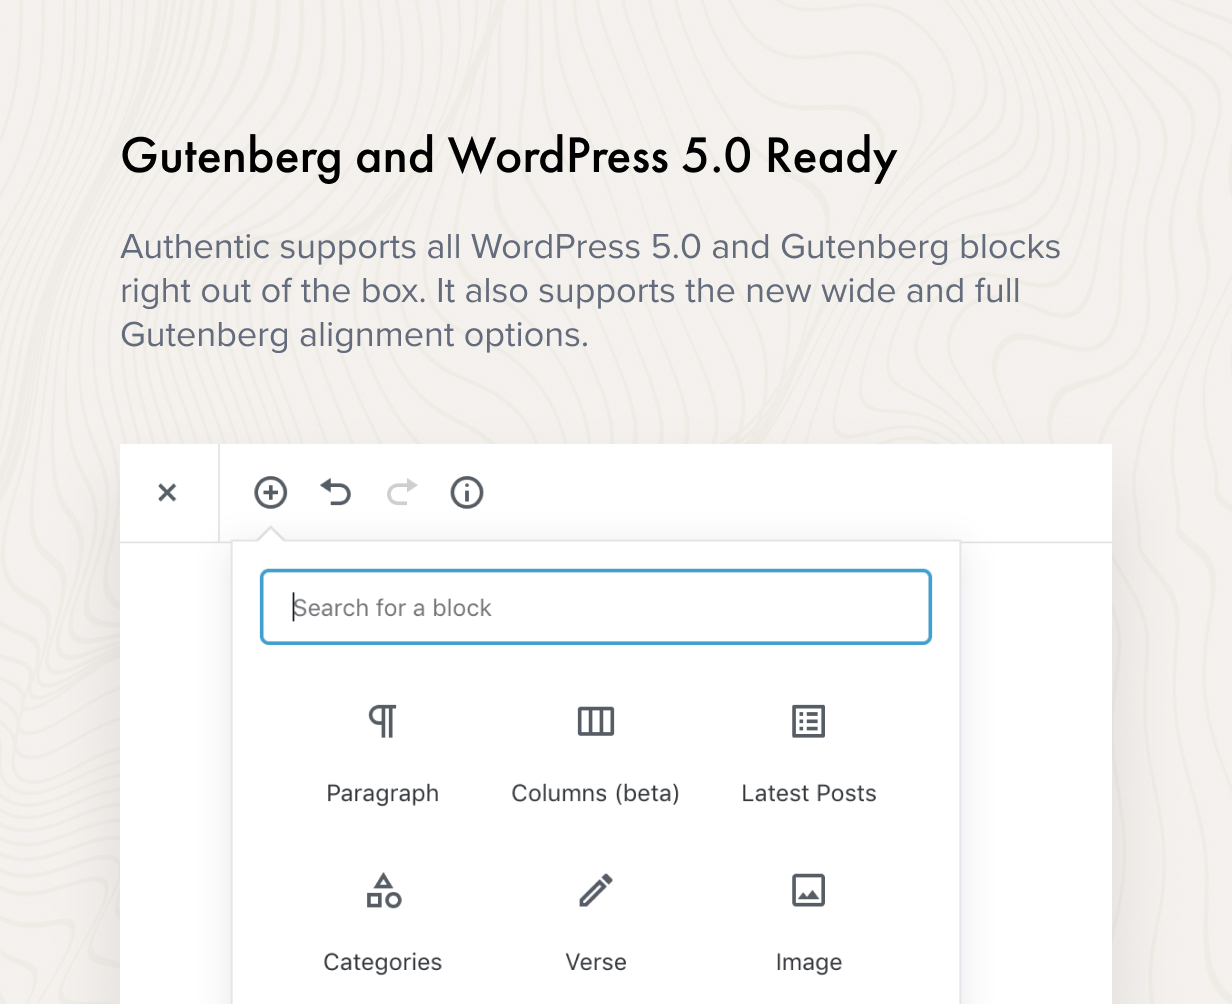 Gutenberg and WordPress 5.0 Ready